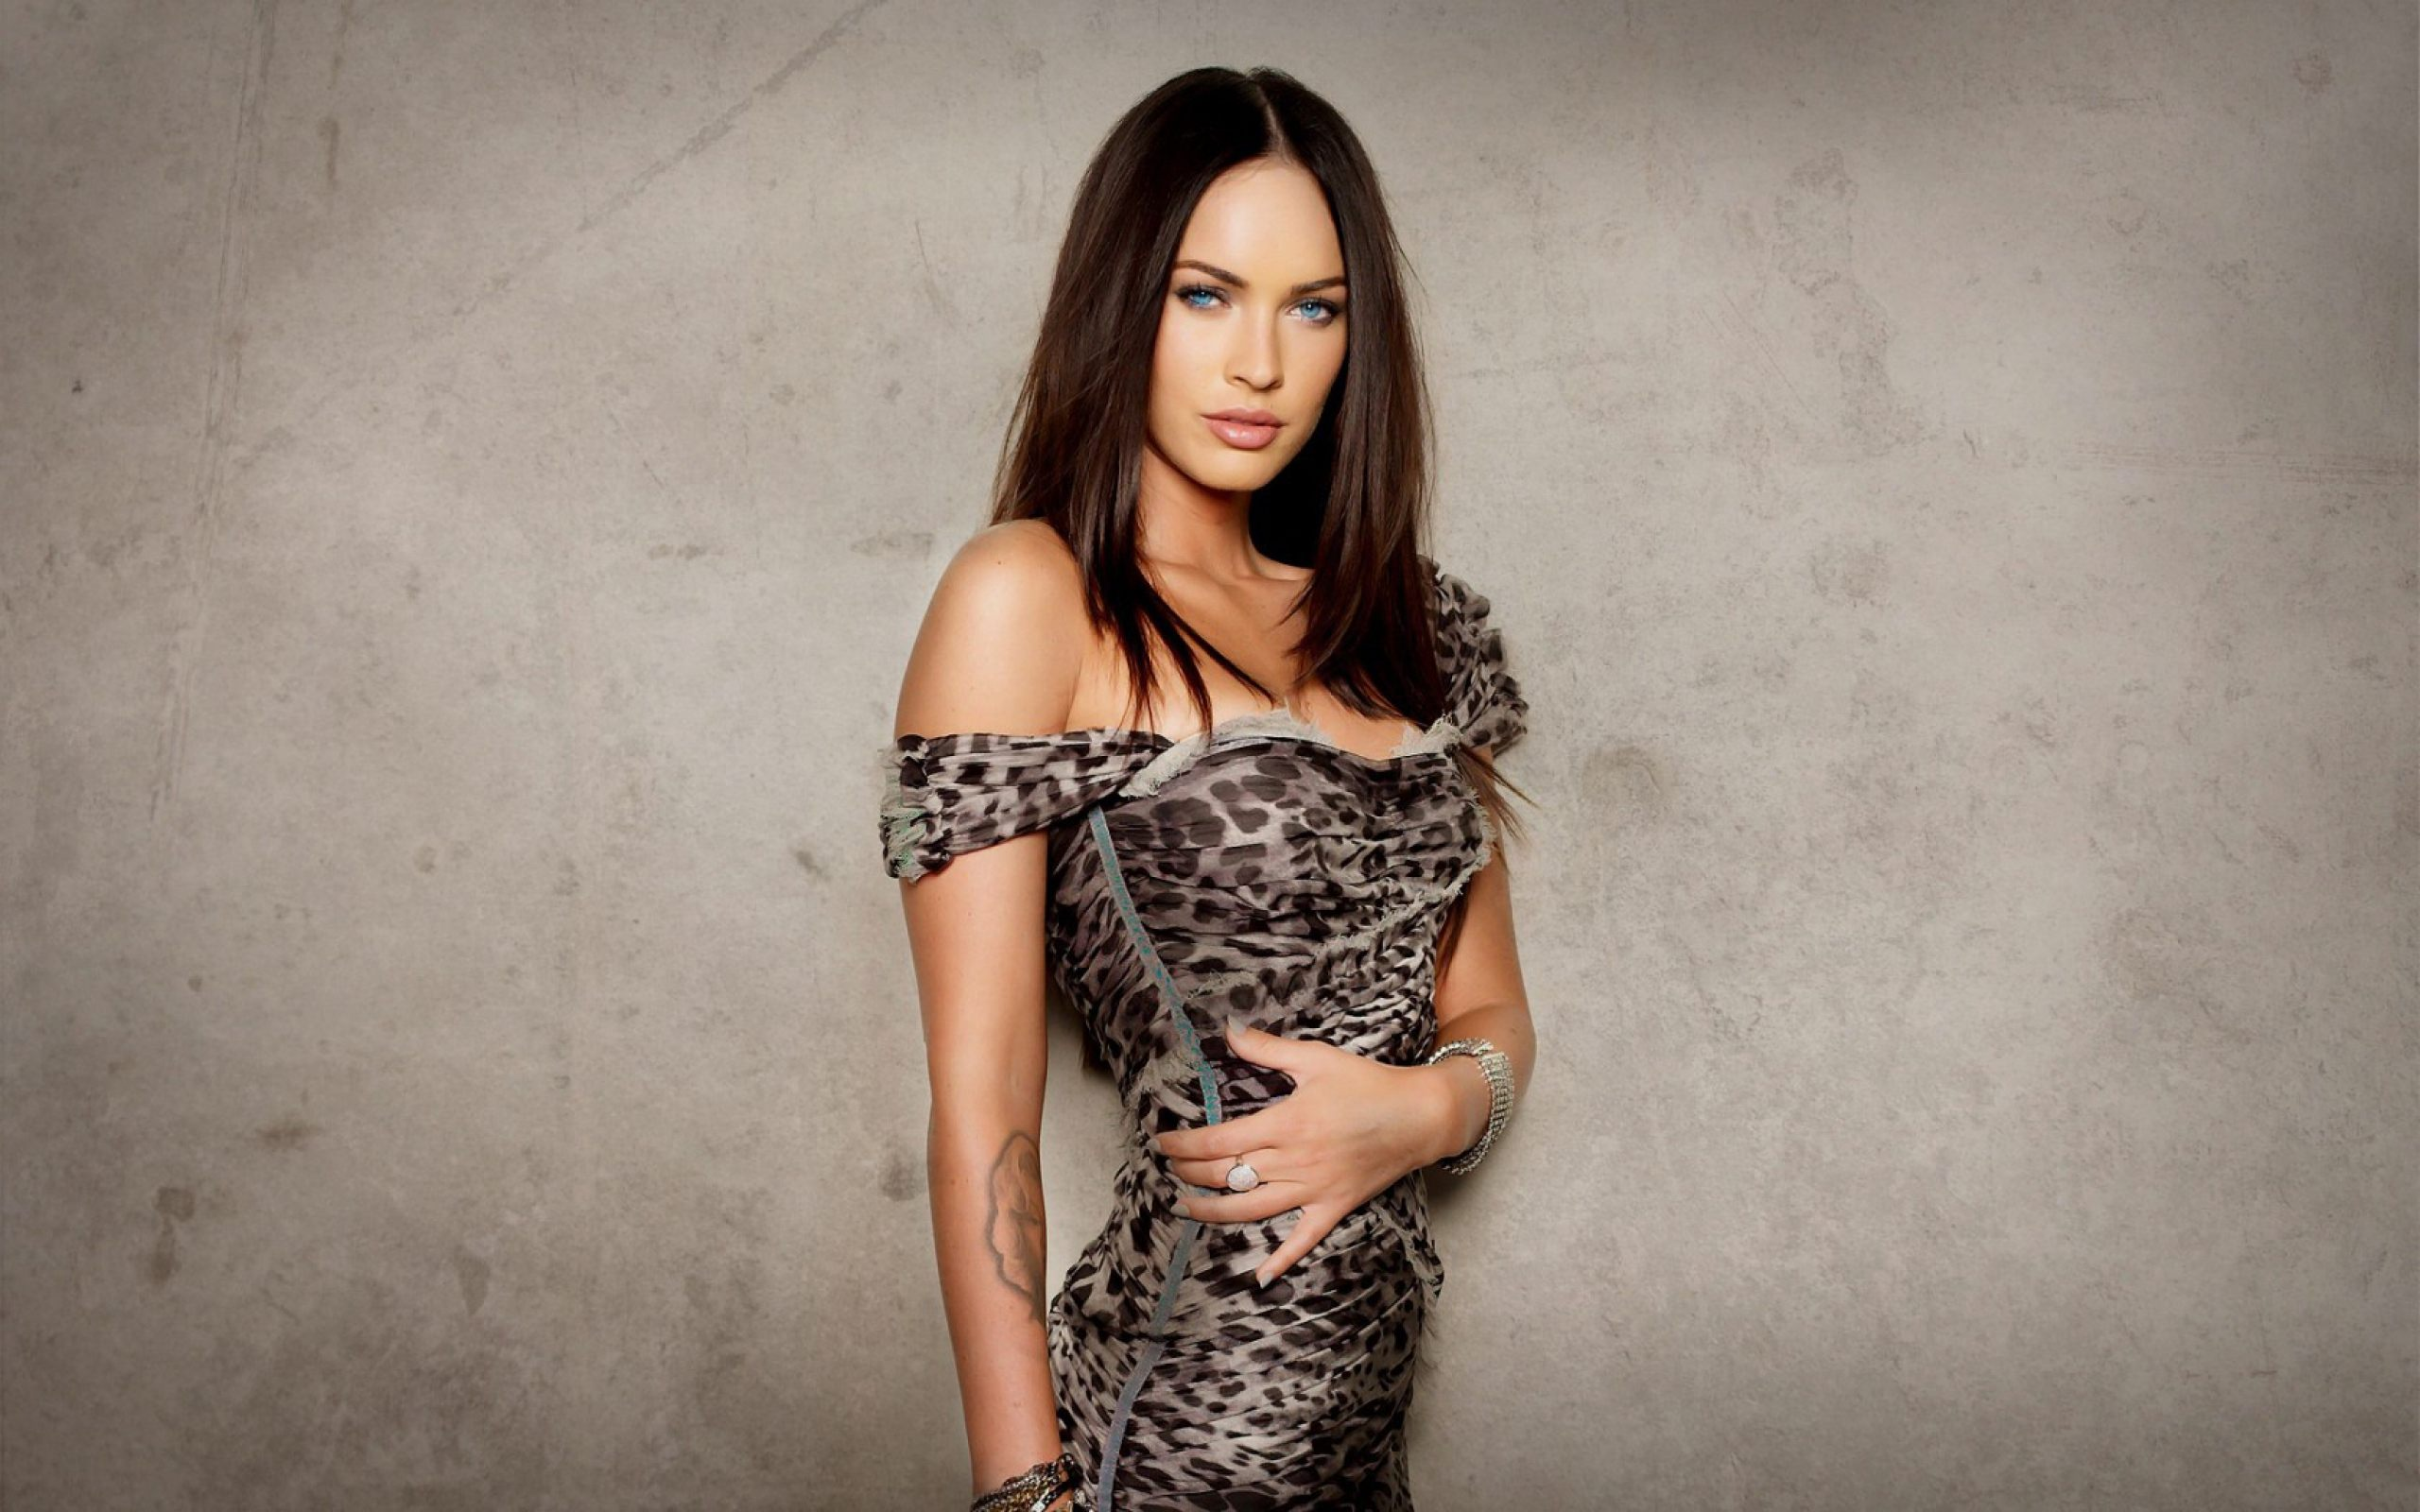 Megan Fox HD Wallpaper HD Download For Desktop amp Mobile 2560x1600